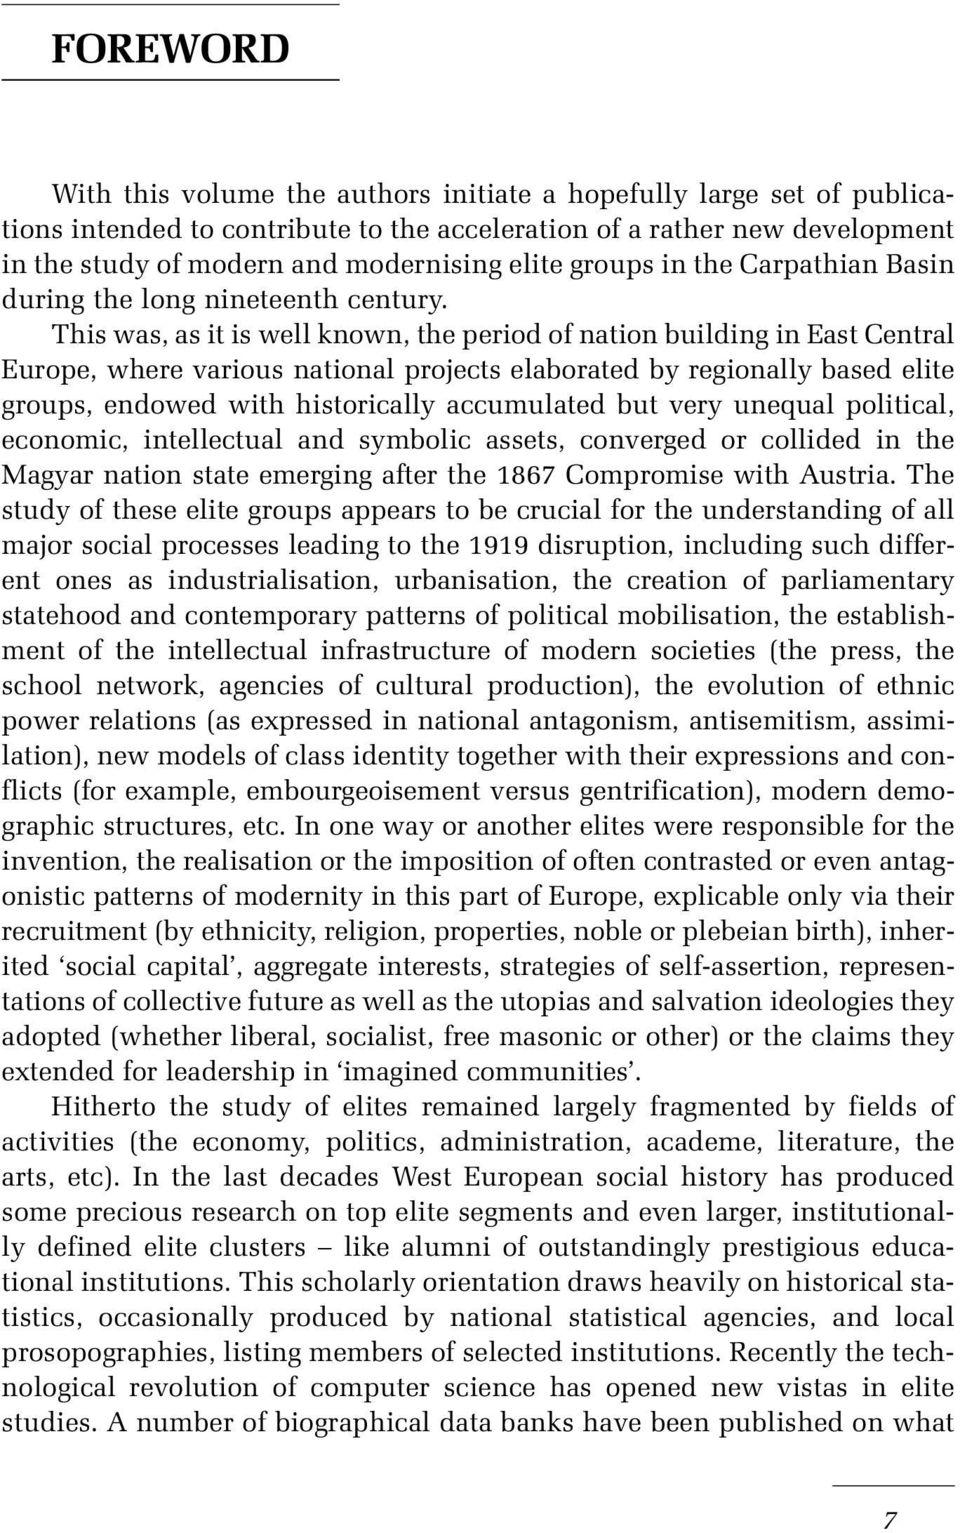 This was, as it is well known, the period of nation building in East Central Europe, where various national projects elaborated by regionally based elite groups, endowed with historically accumulated